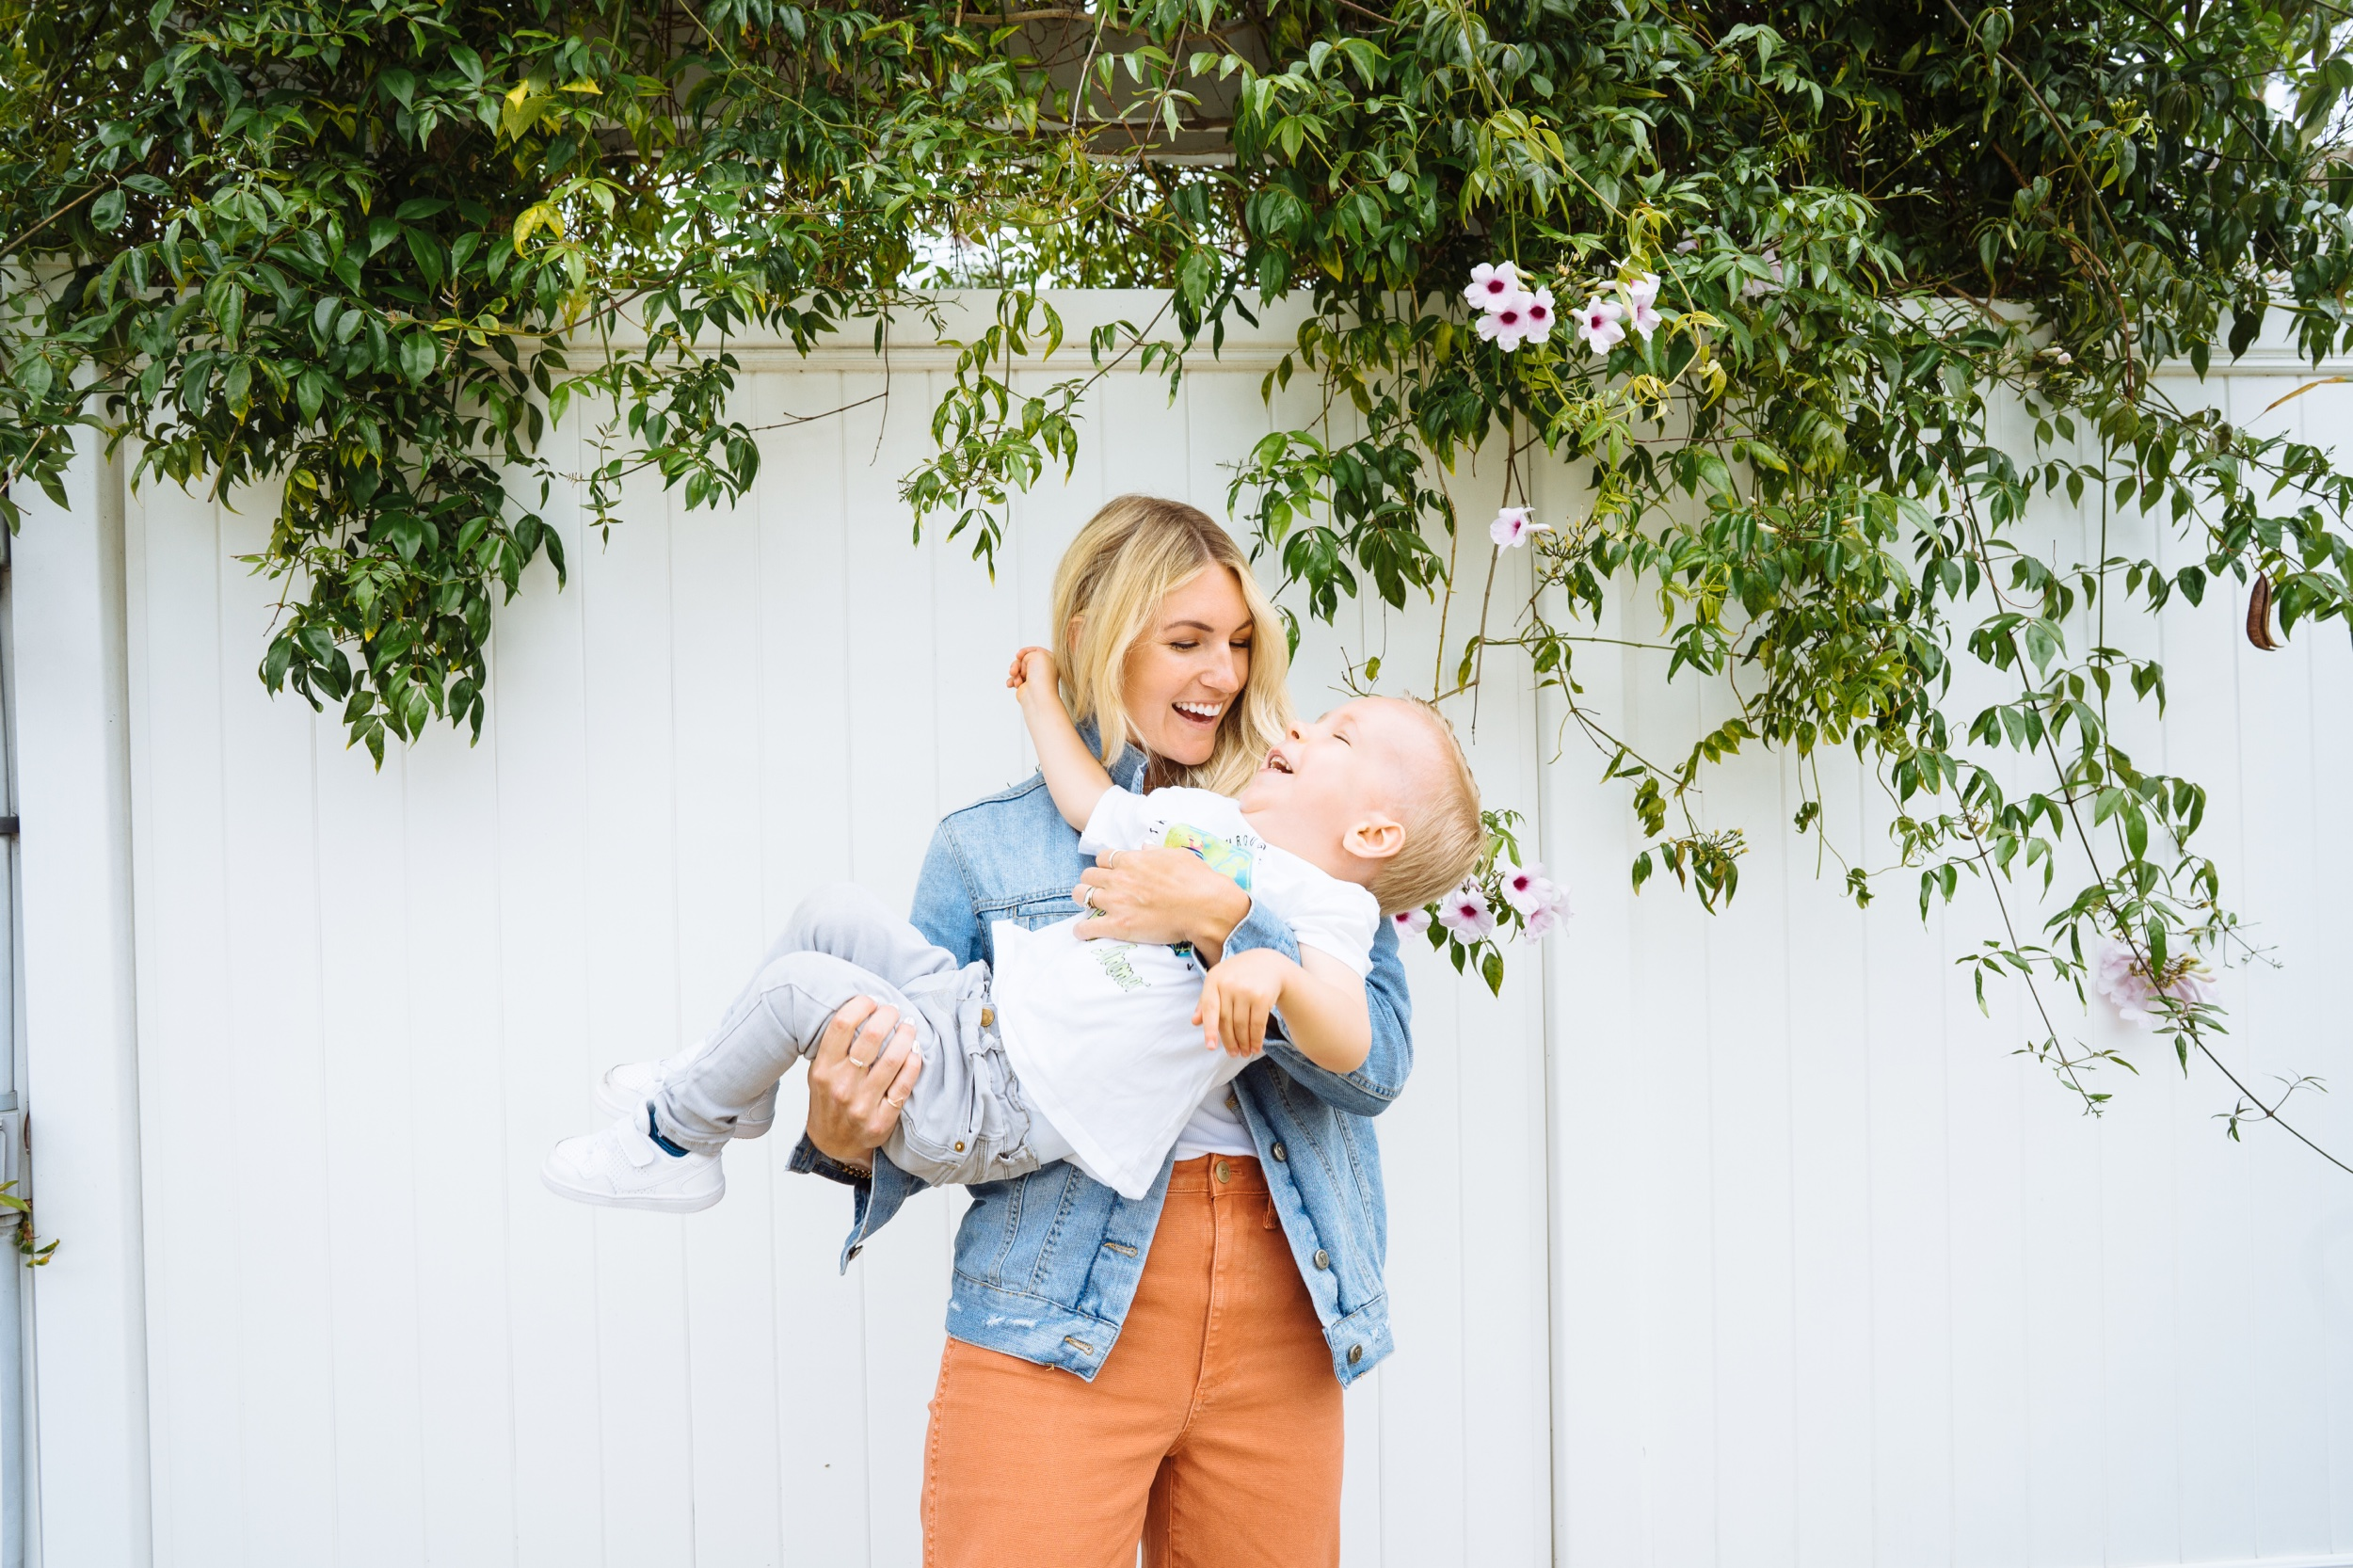 Mom Vibes - Cal Update | Salty Blondes